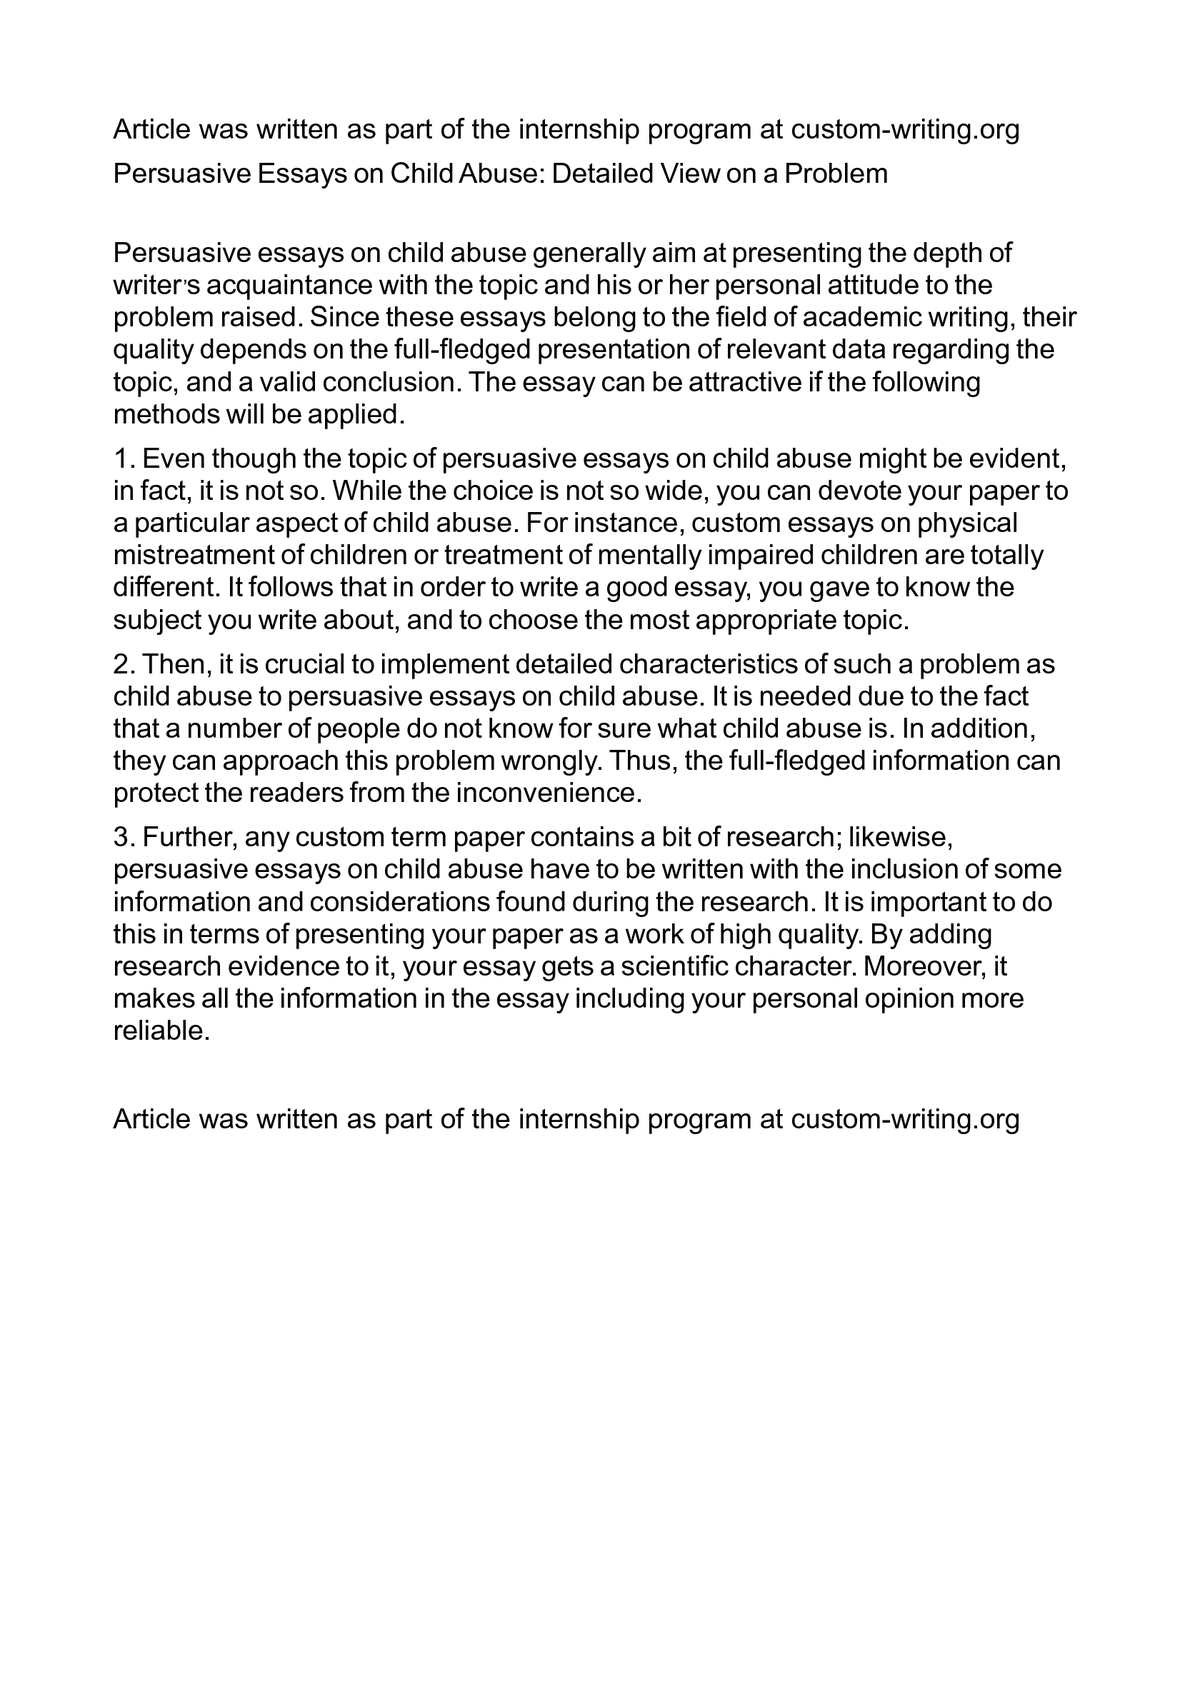 persuasive essays child abuse Persuasive essay on child abuse persuasive essay on child abuse - title ebooks : persuasive essay on child abuse - category : kindle and ebooks pdf - author :.